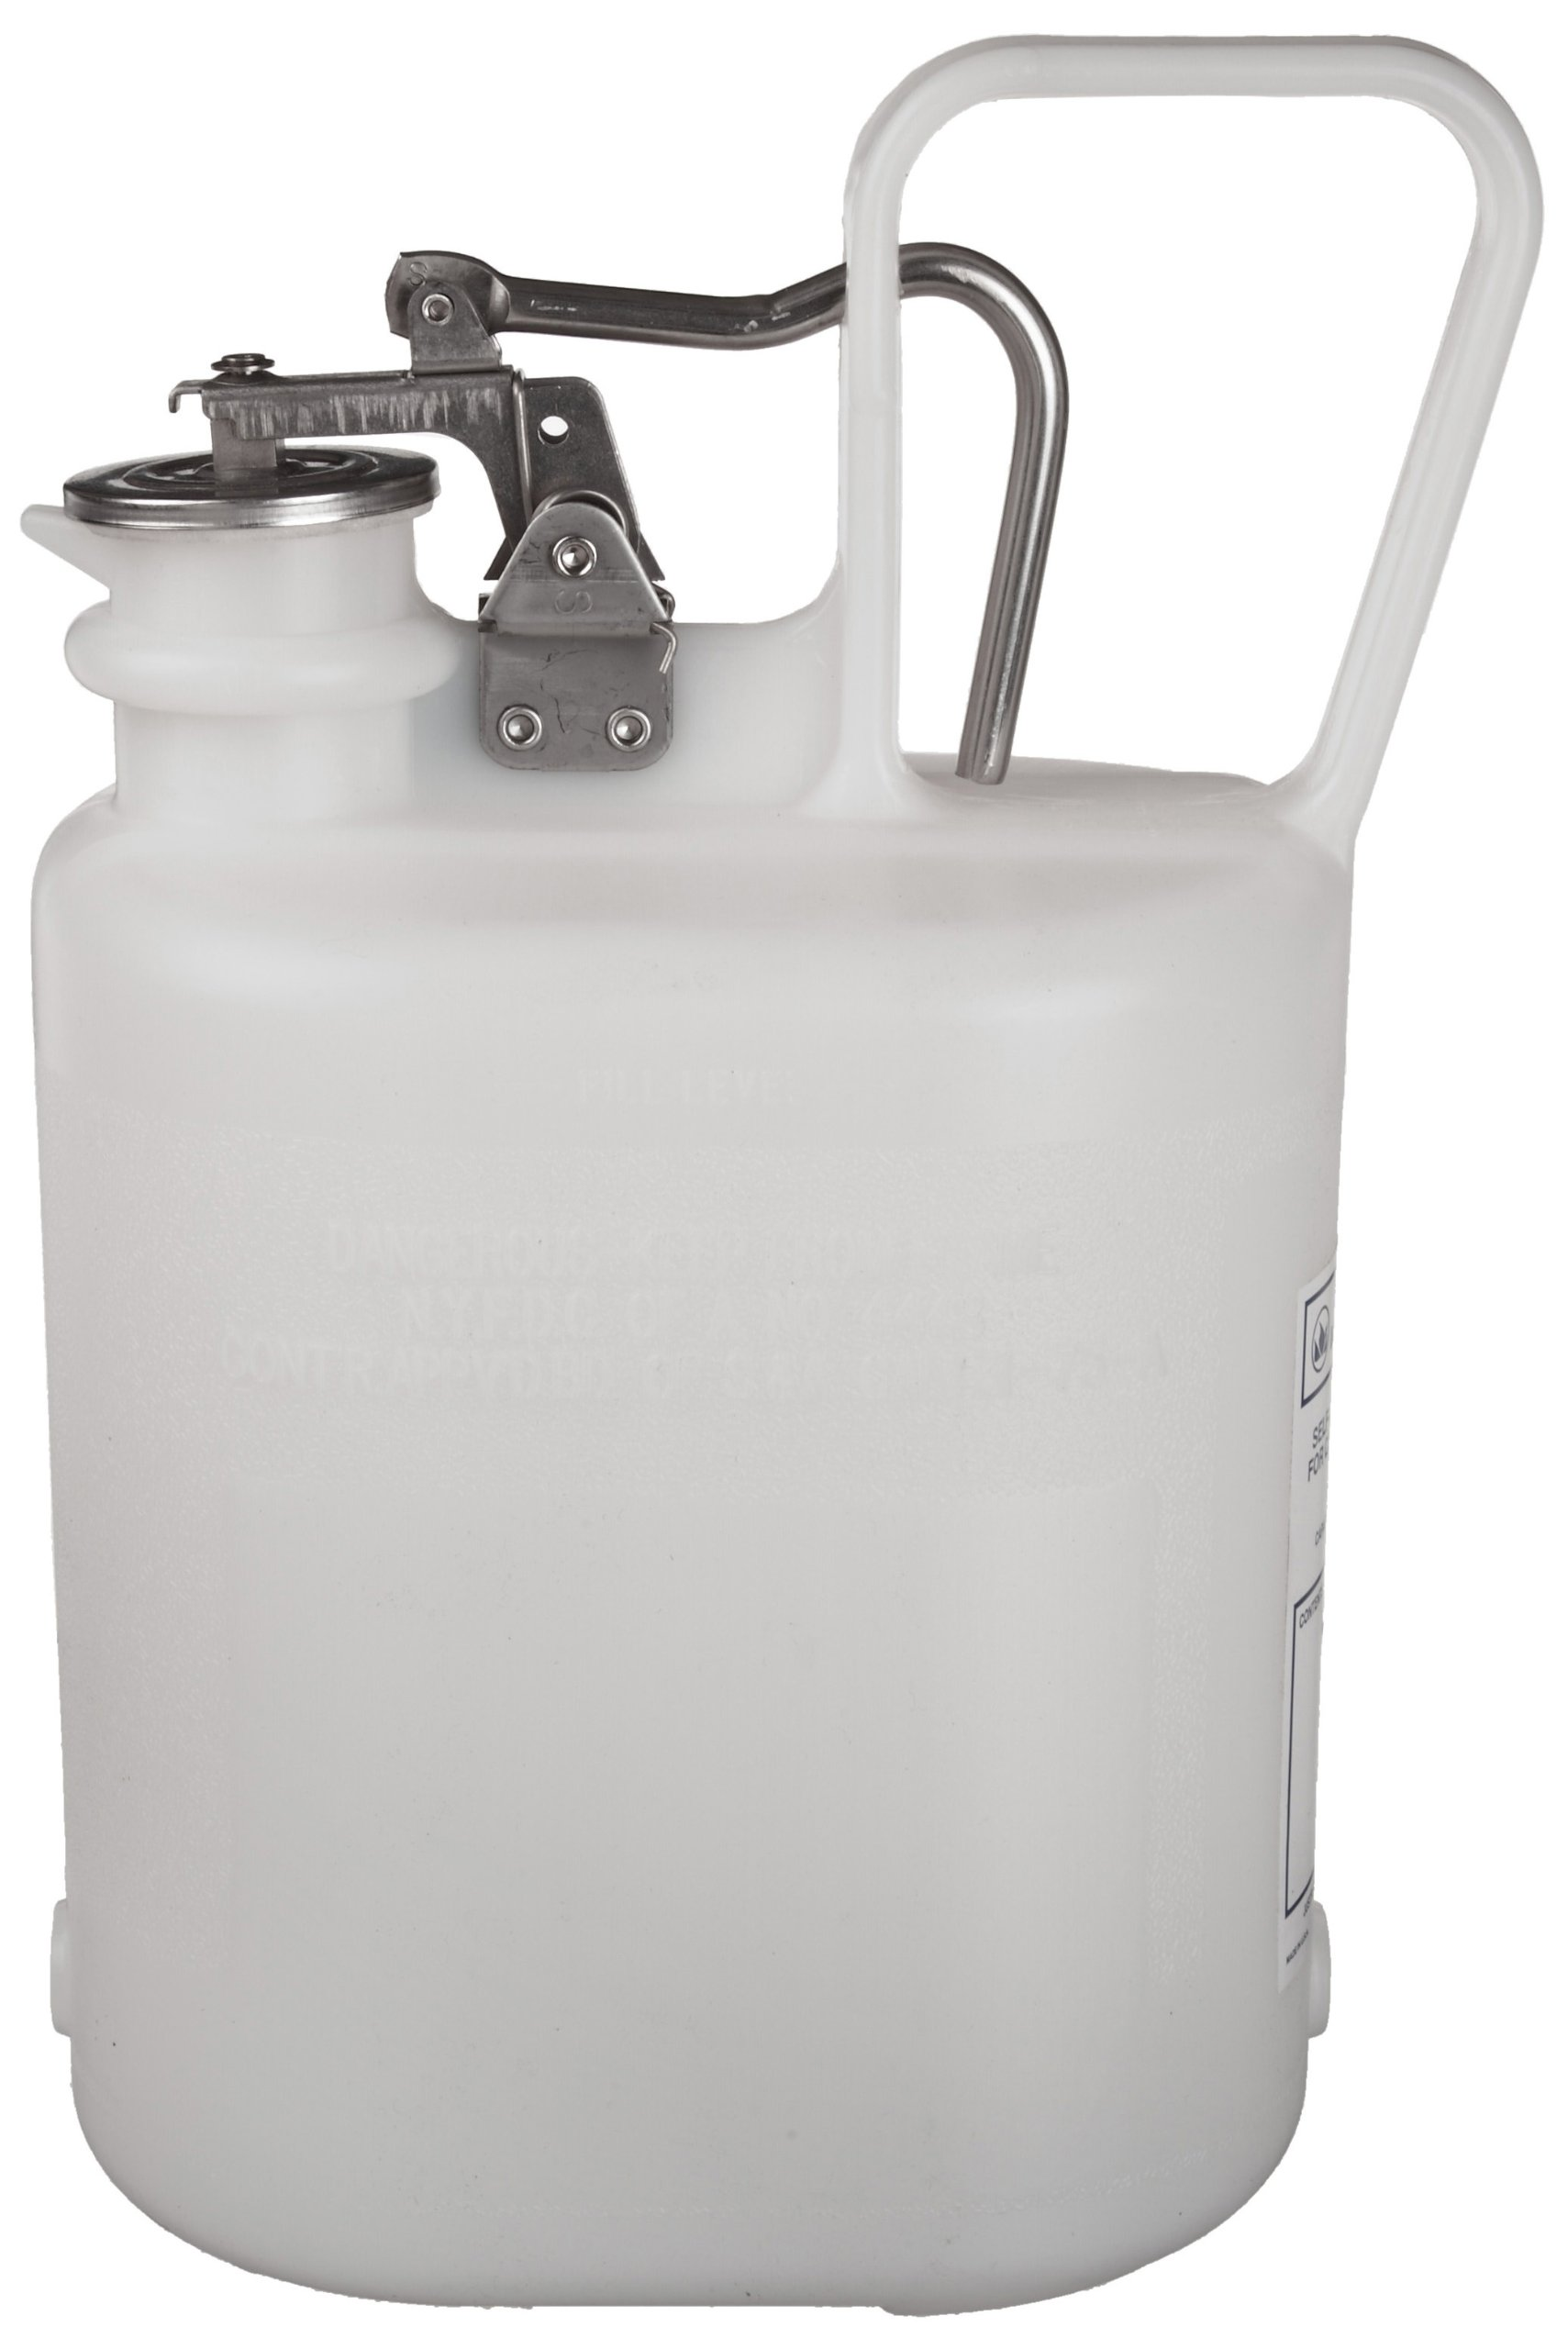 Justrite 12161 1 Gallon Capacity, 4 5/8'' x 7 5/8'' x 12 3/4'' (O.D x HT) Laboratory Cans For Corrosives